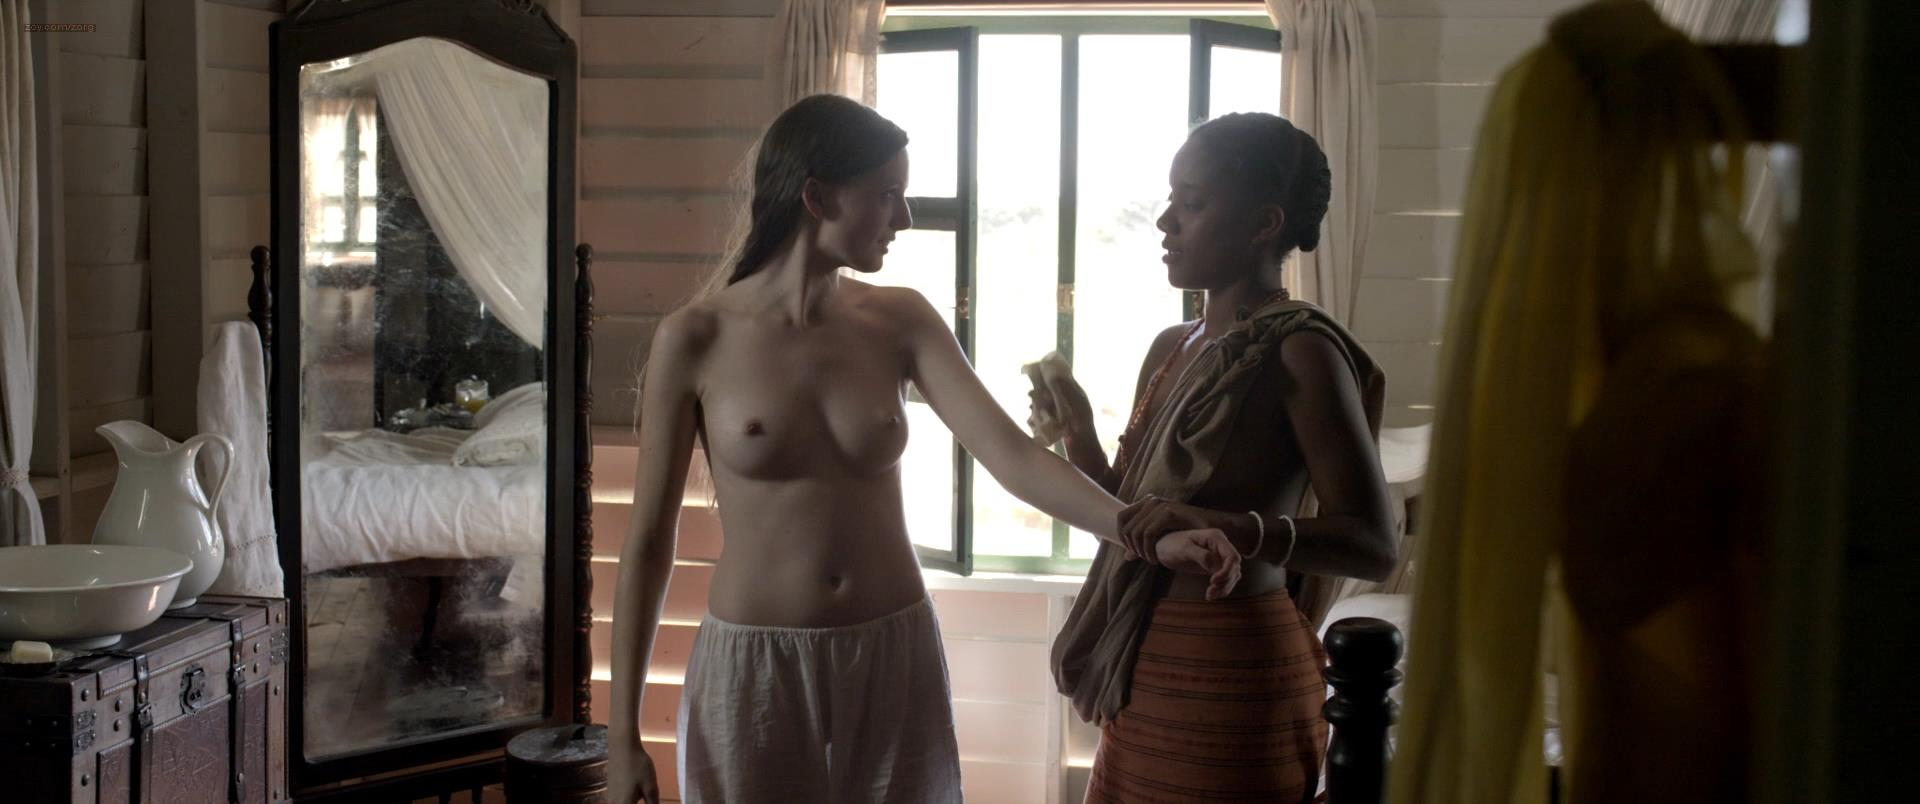 kate winslet nude bush and topless and jeanette hain nude